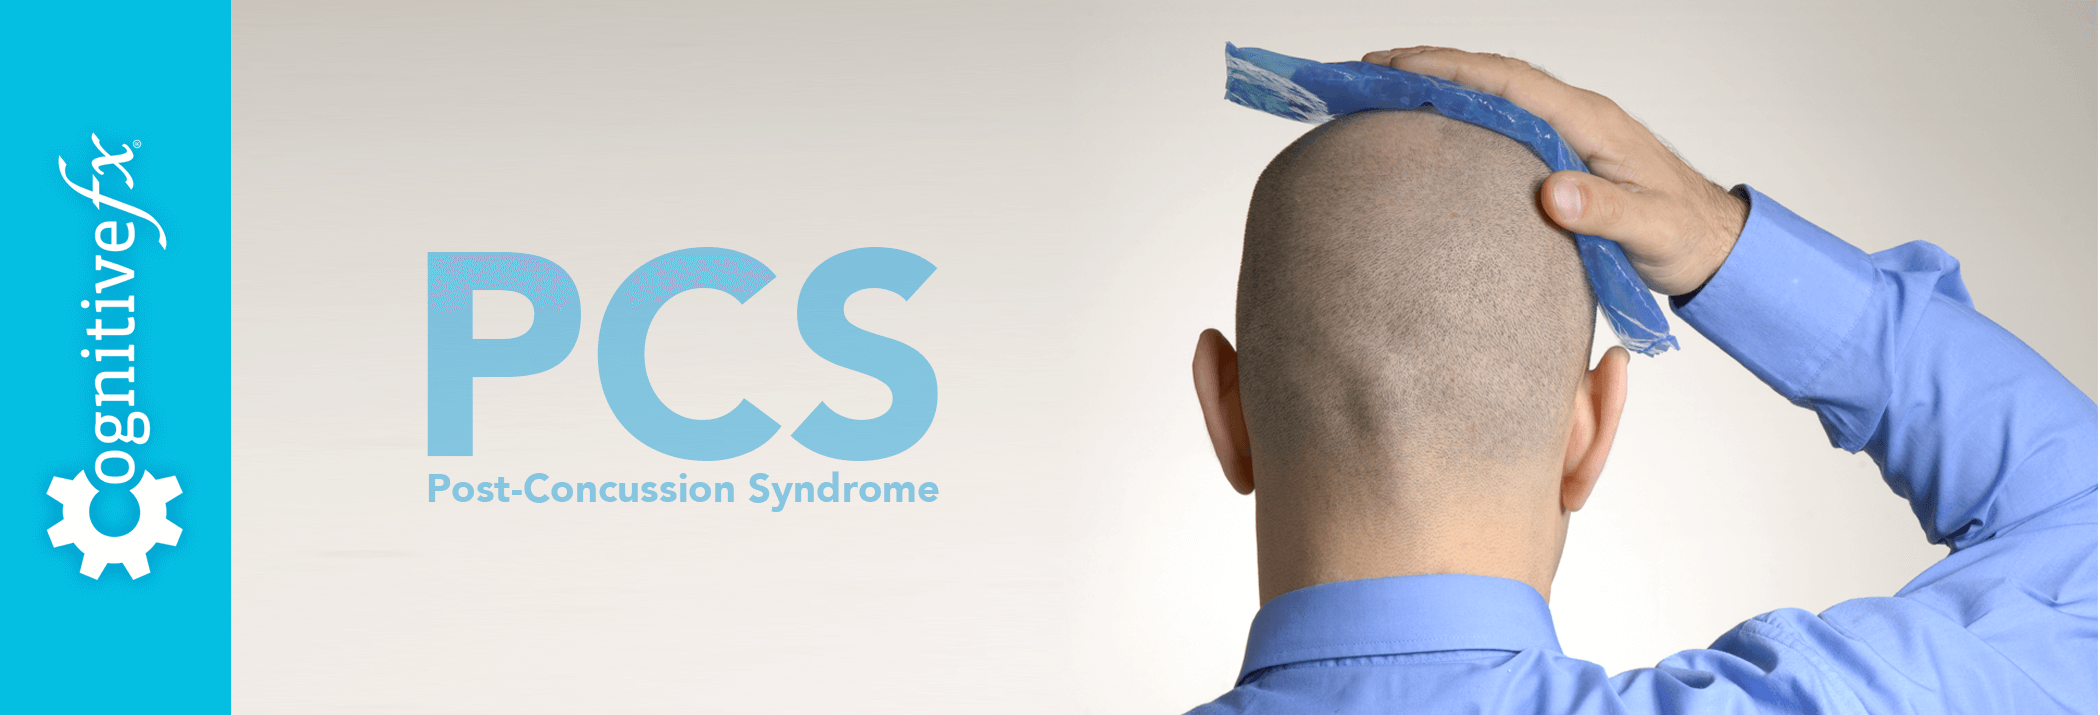 Post-Concussion Syndrome Treatment: Diagnosis, Therapy, Medications, and More